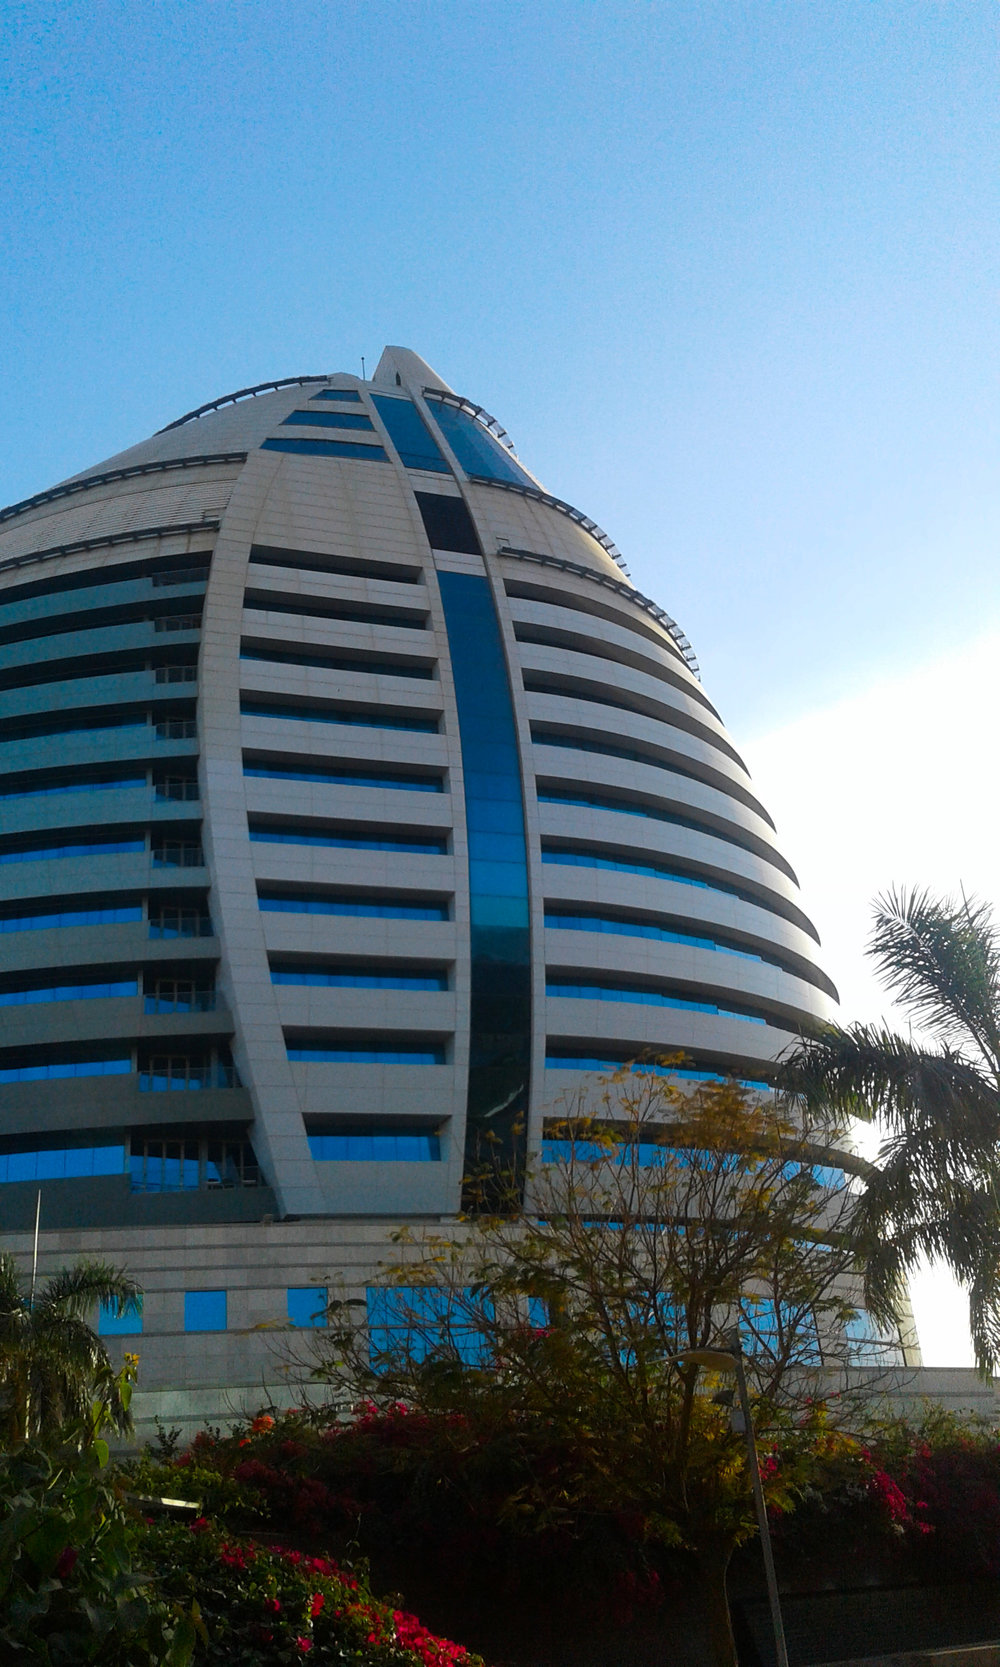 Khartoum's Corinthia hotel, or Gaddafi's egg if you prefer...